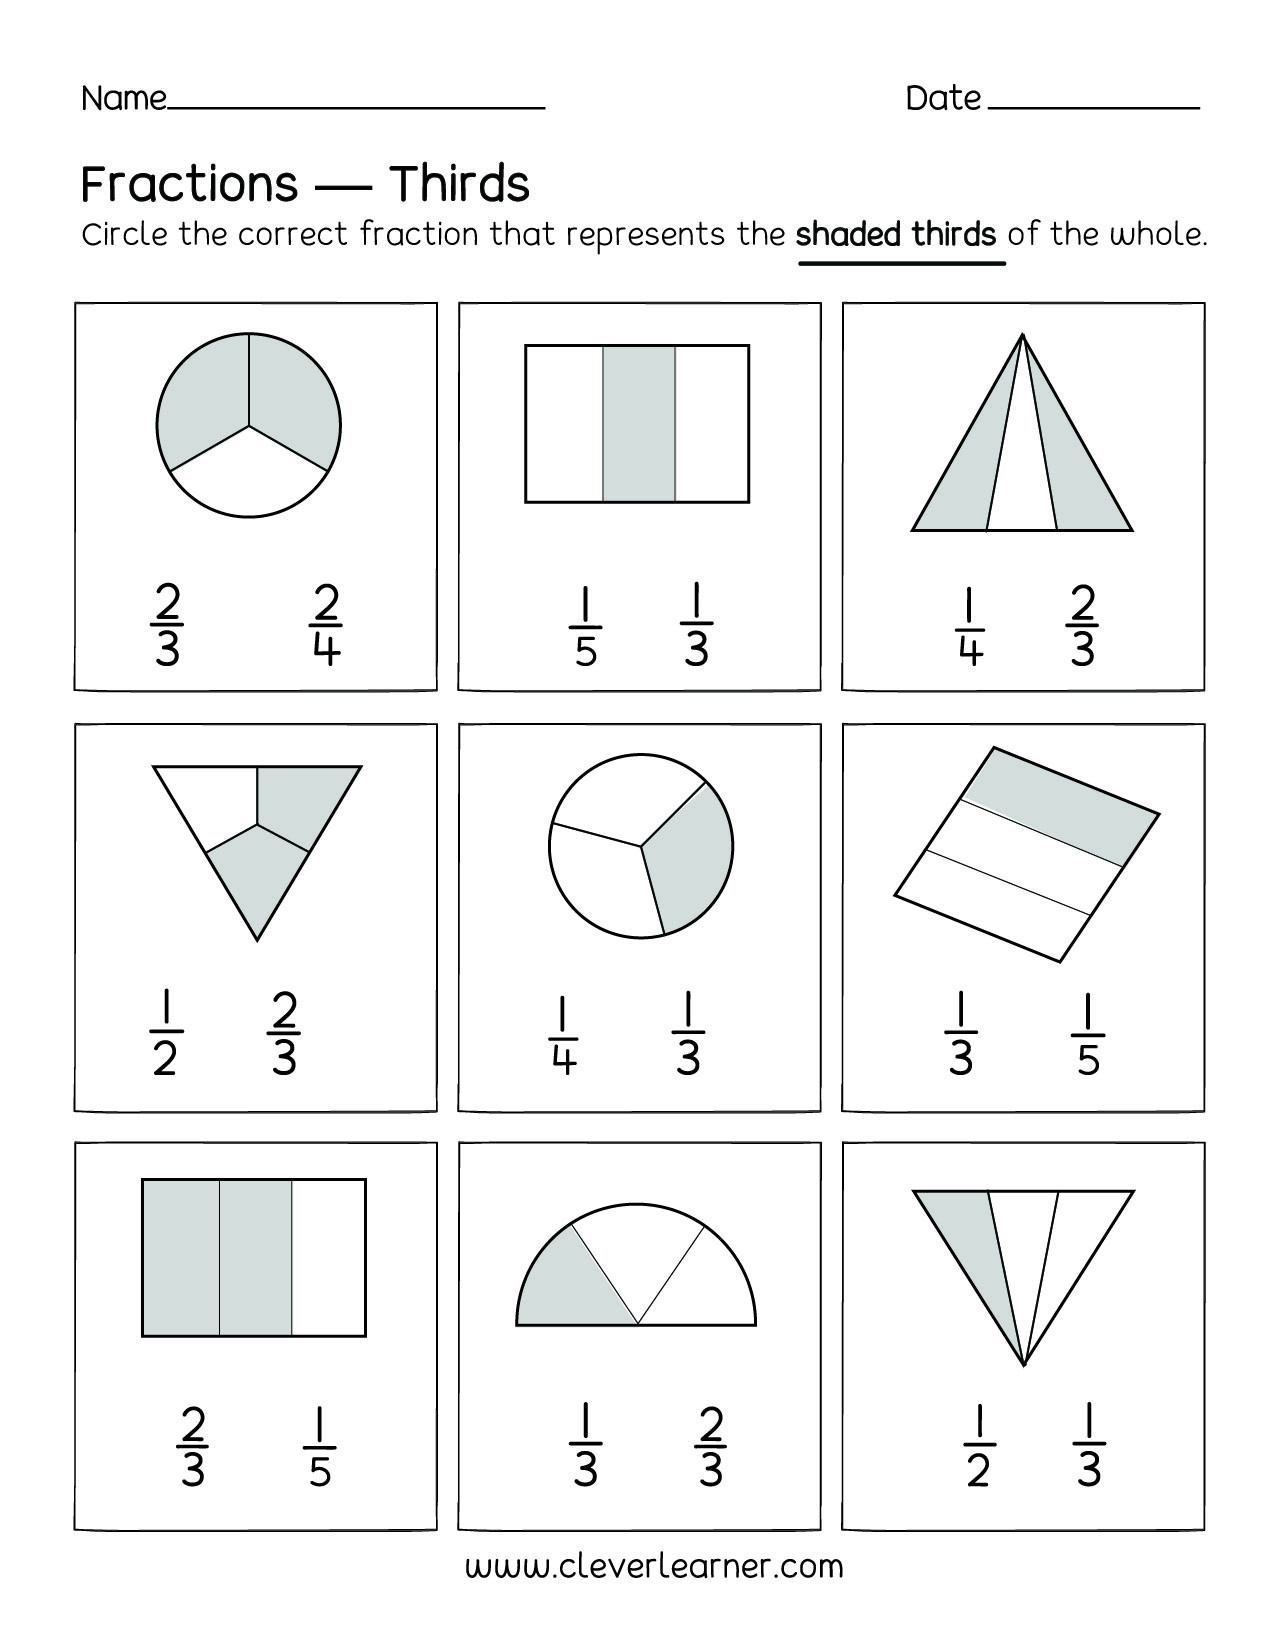 Fraction Worksheets for 1st Grade Fun Activity On Fractions Thirds Worksheets for Children